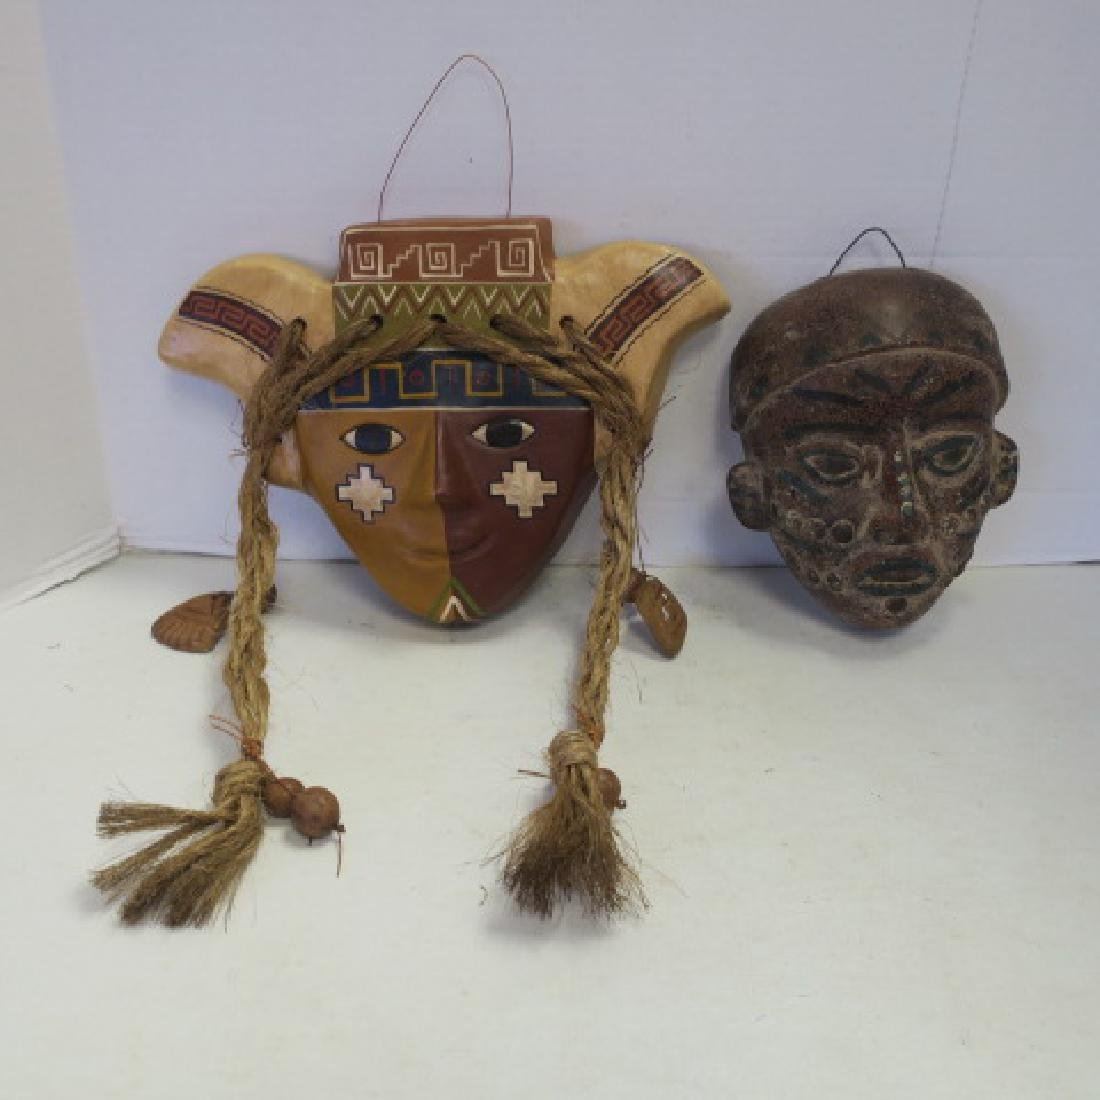 Handmade Ceramic South American & Ghana African Masks: